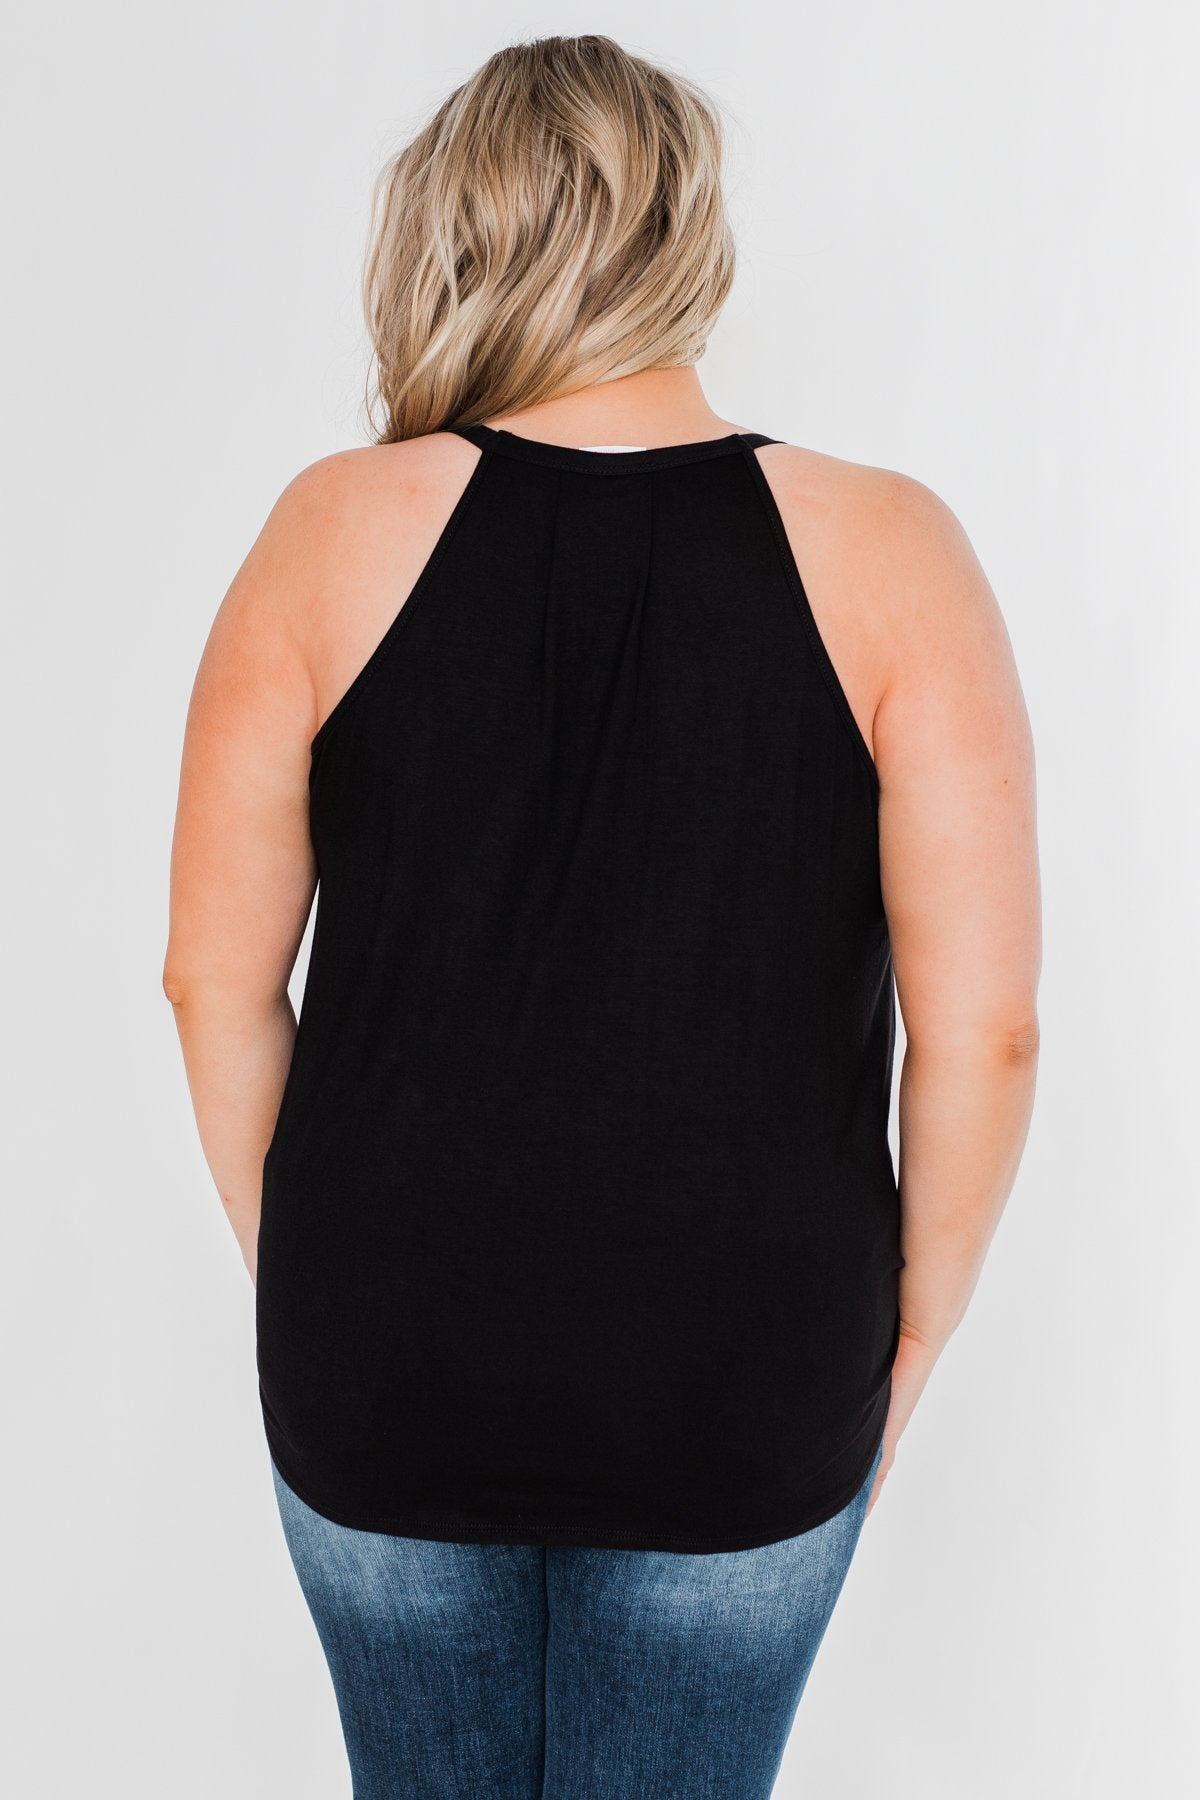 Something Simple Wrap Tank Top- Black